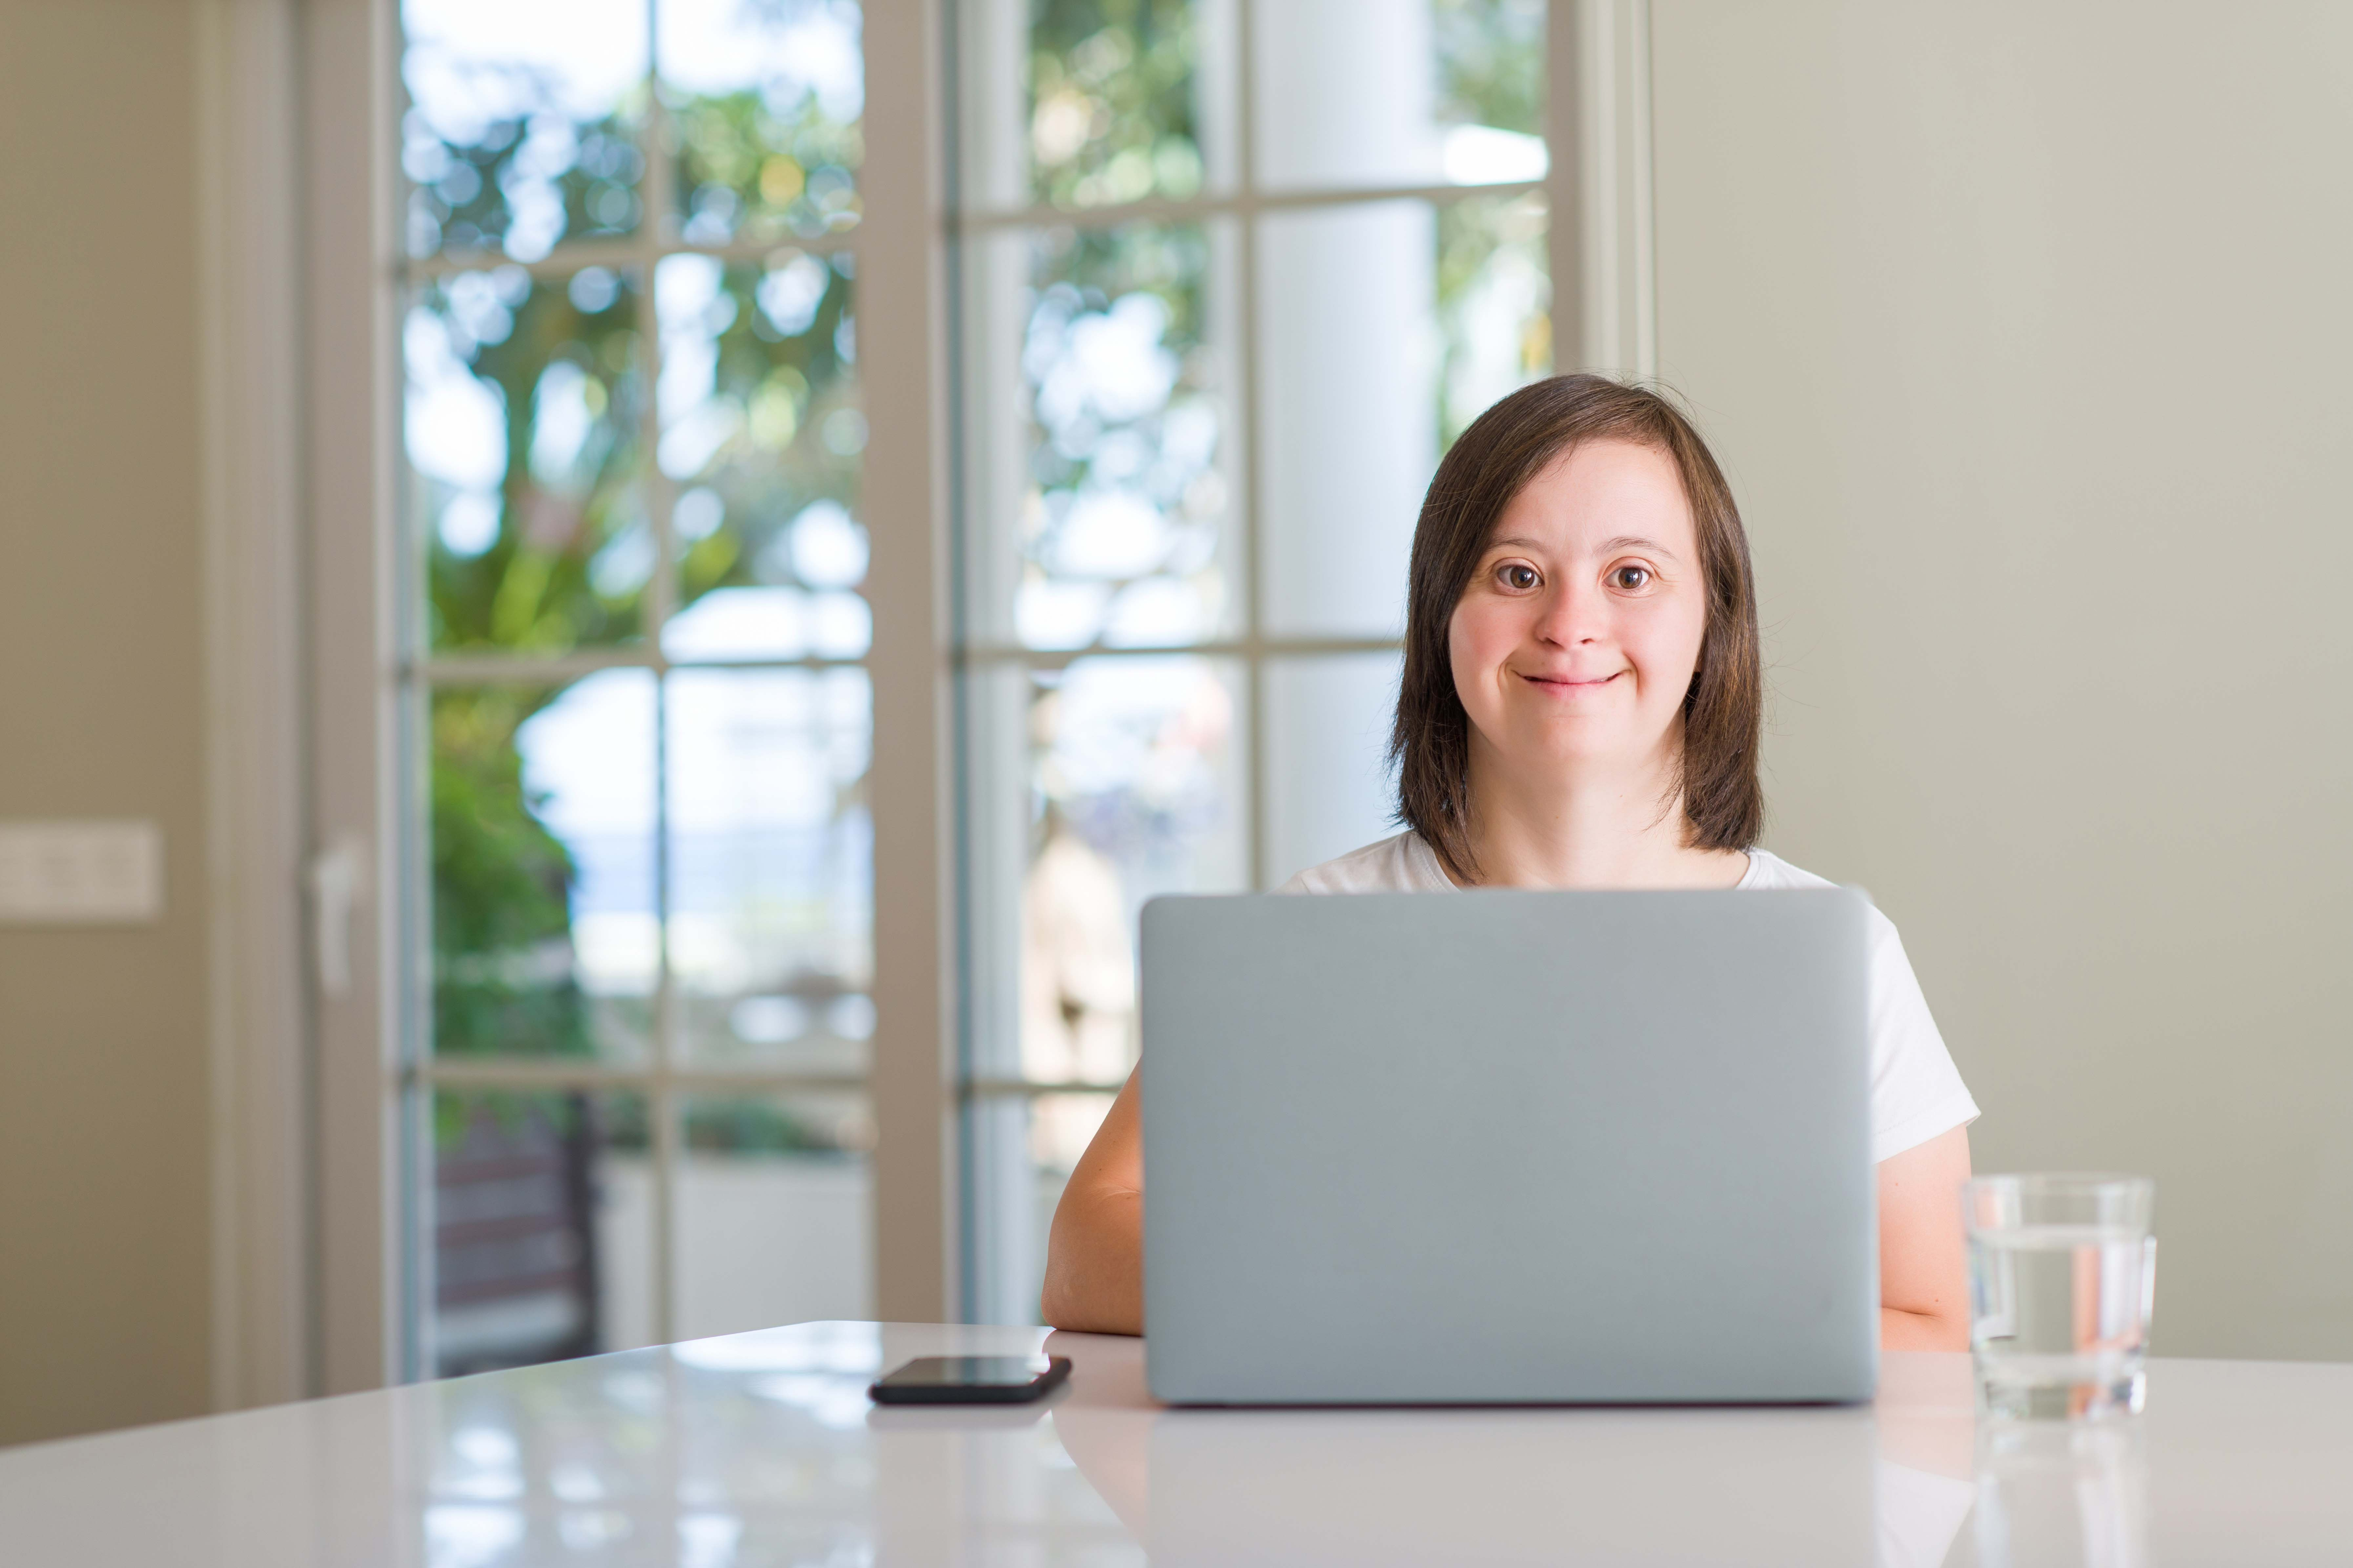 woman with down syndrome smiles and uses laptop